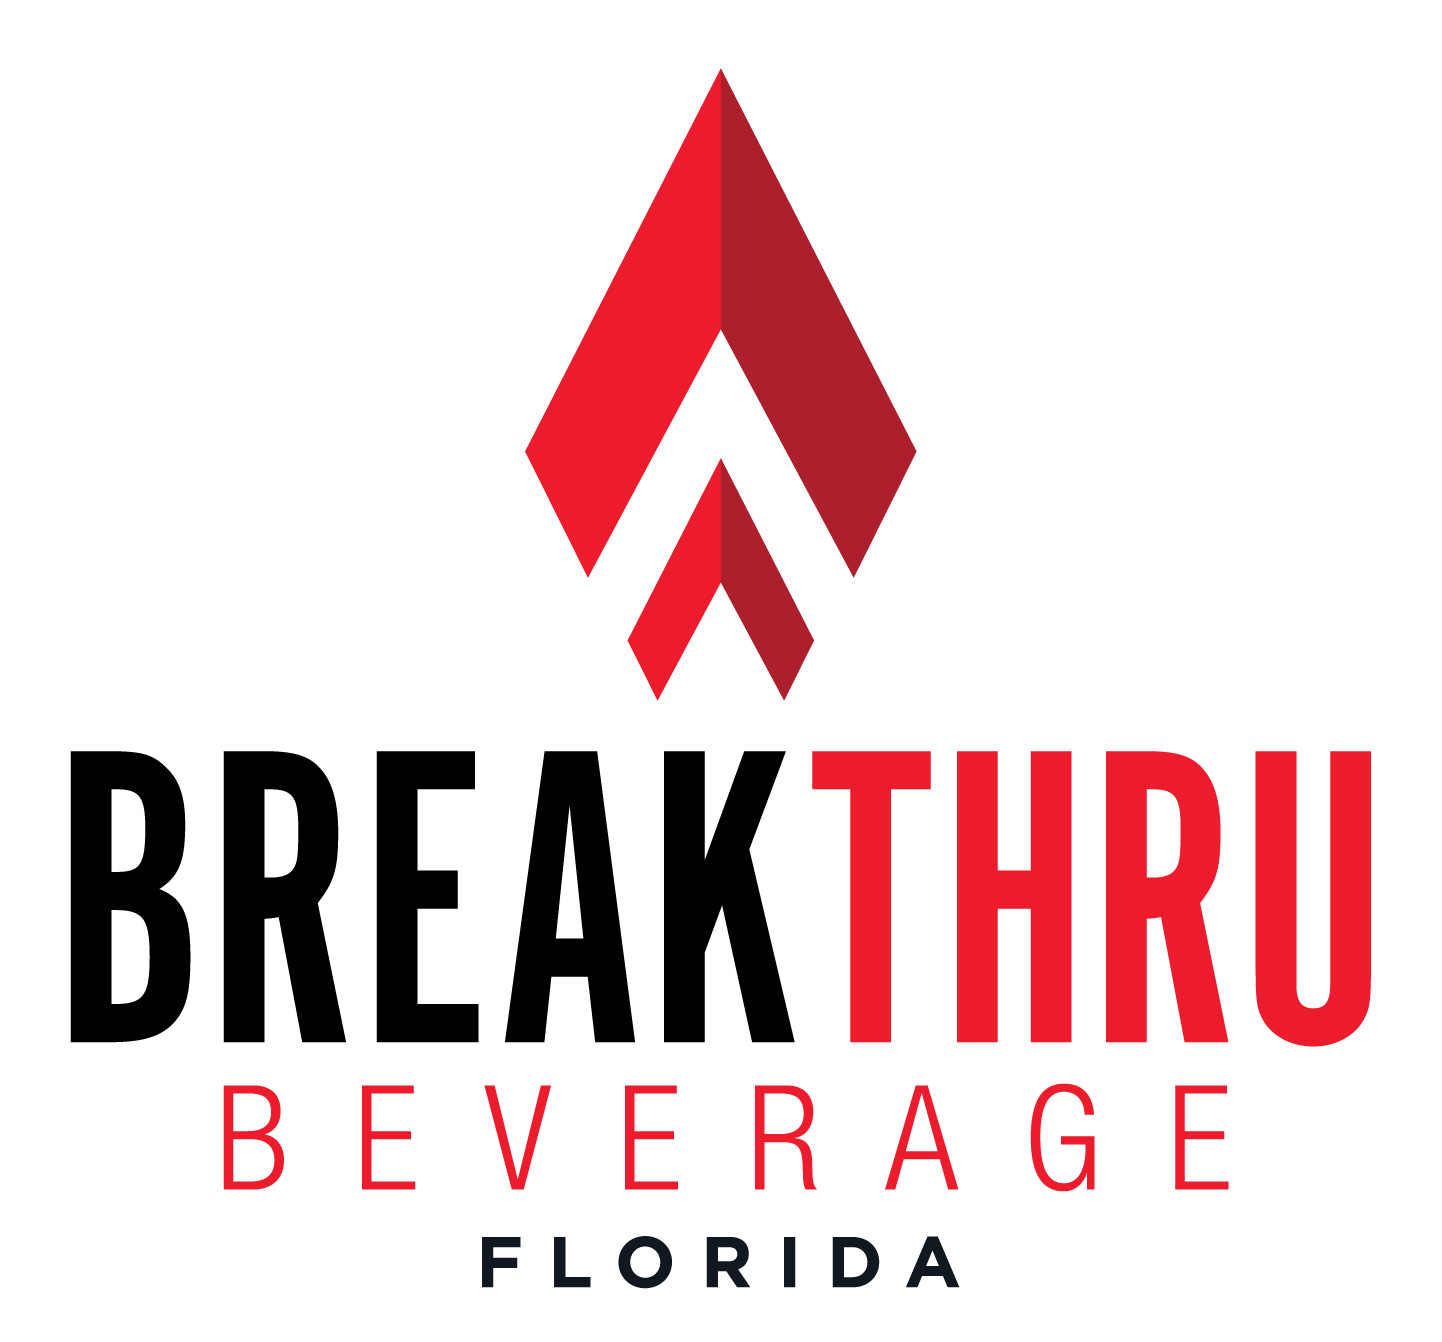 Breakthru Beverage Florida